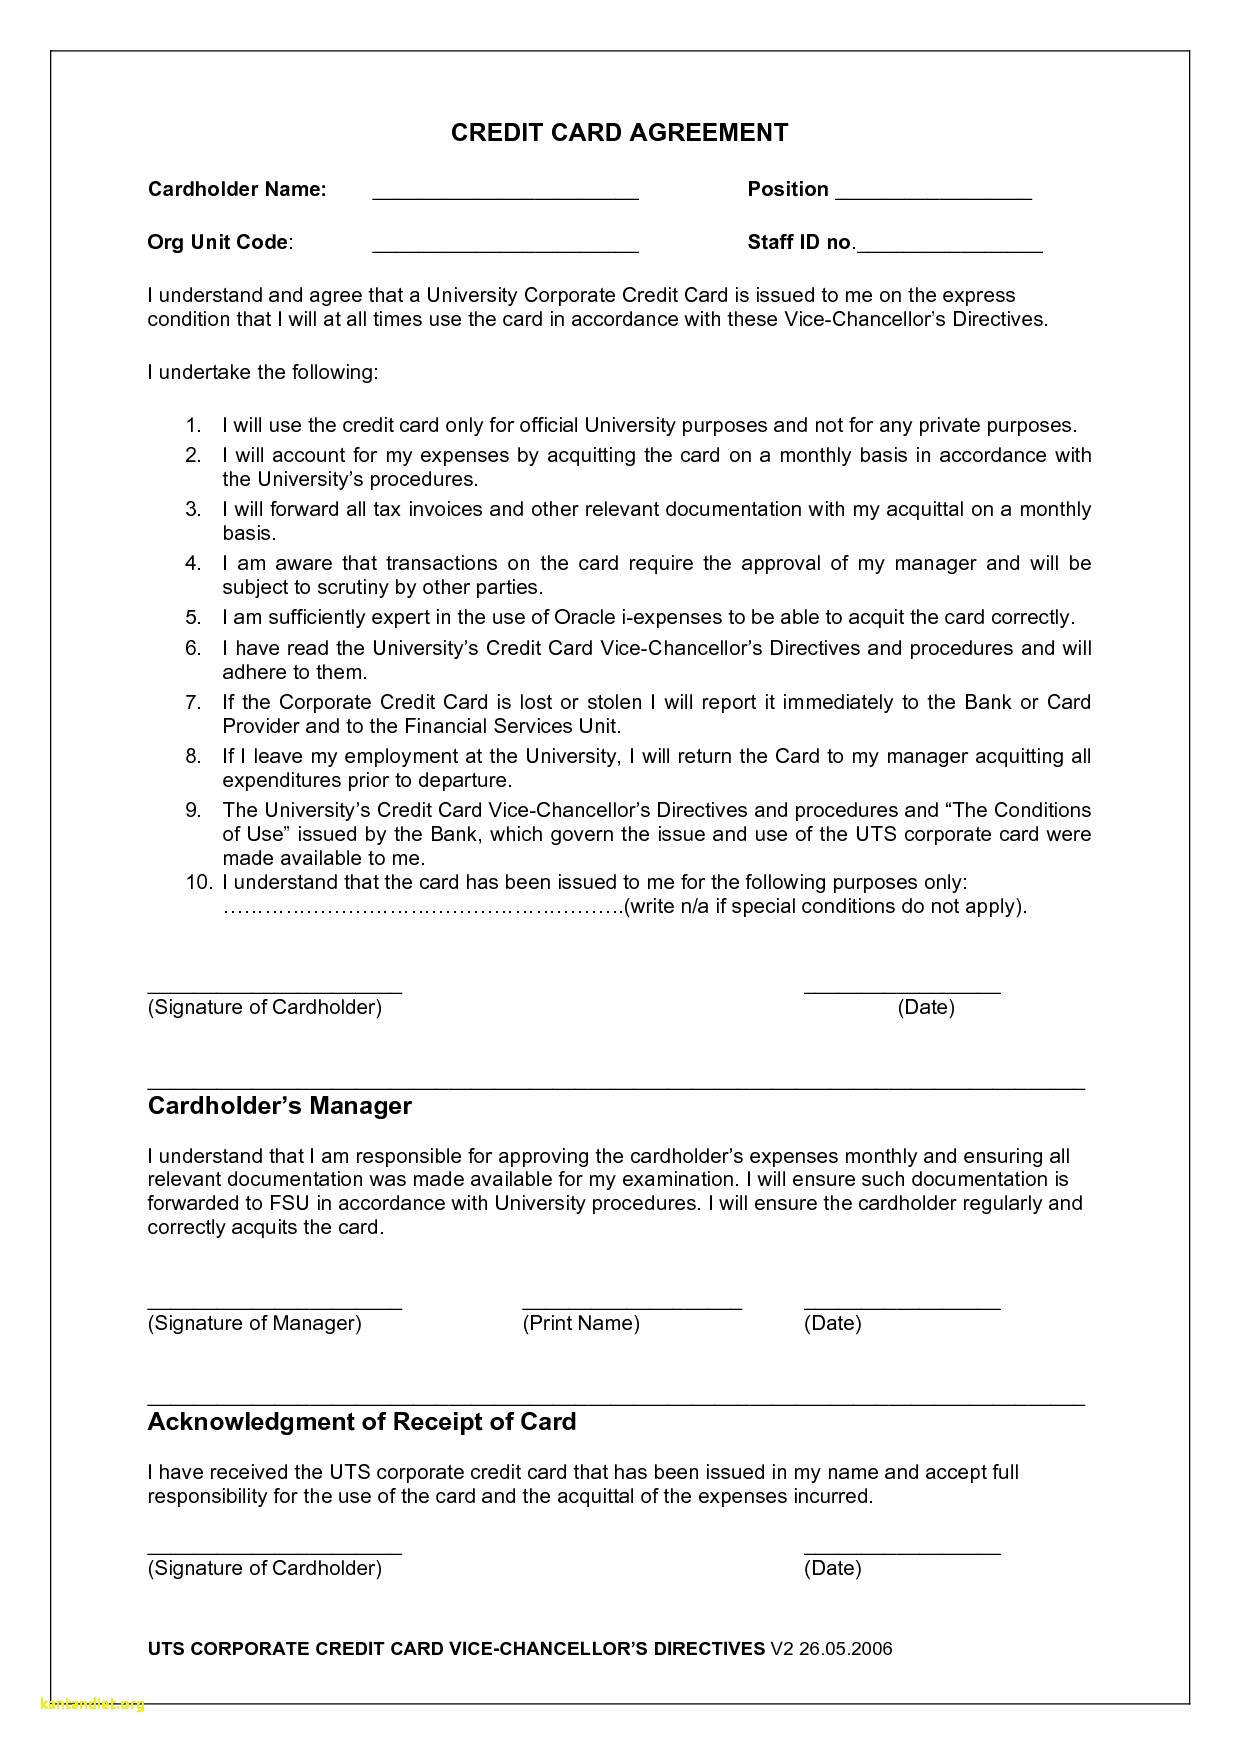 acquittal report template Lovely Employee Credit Card Agreement